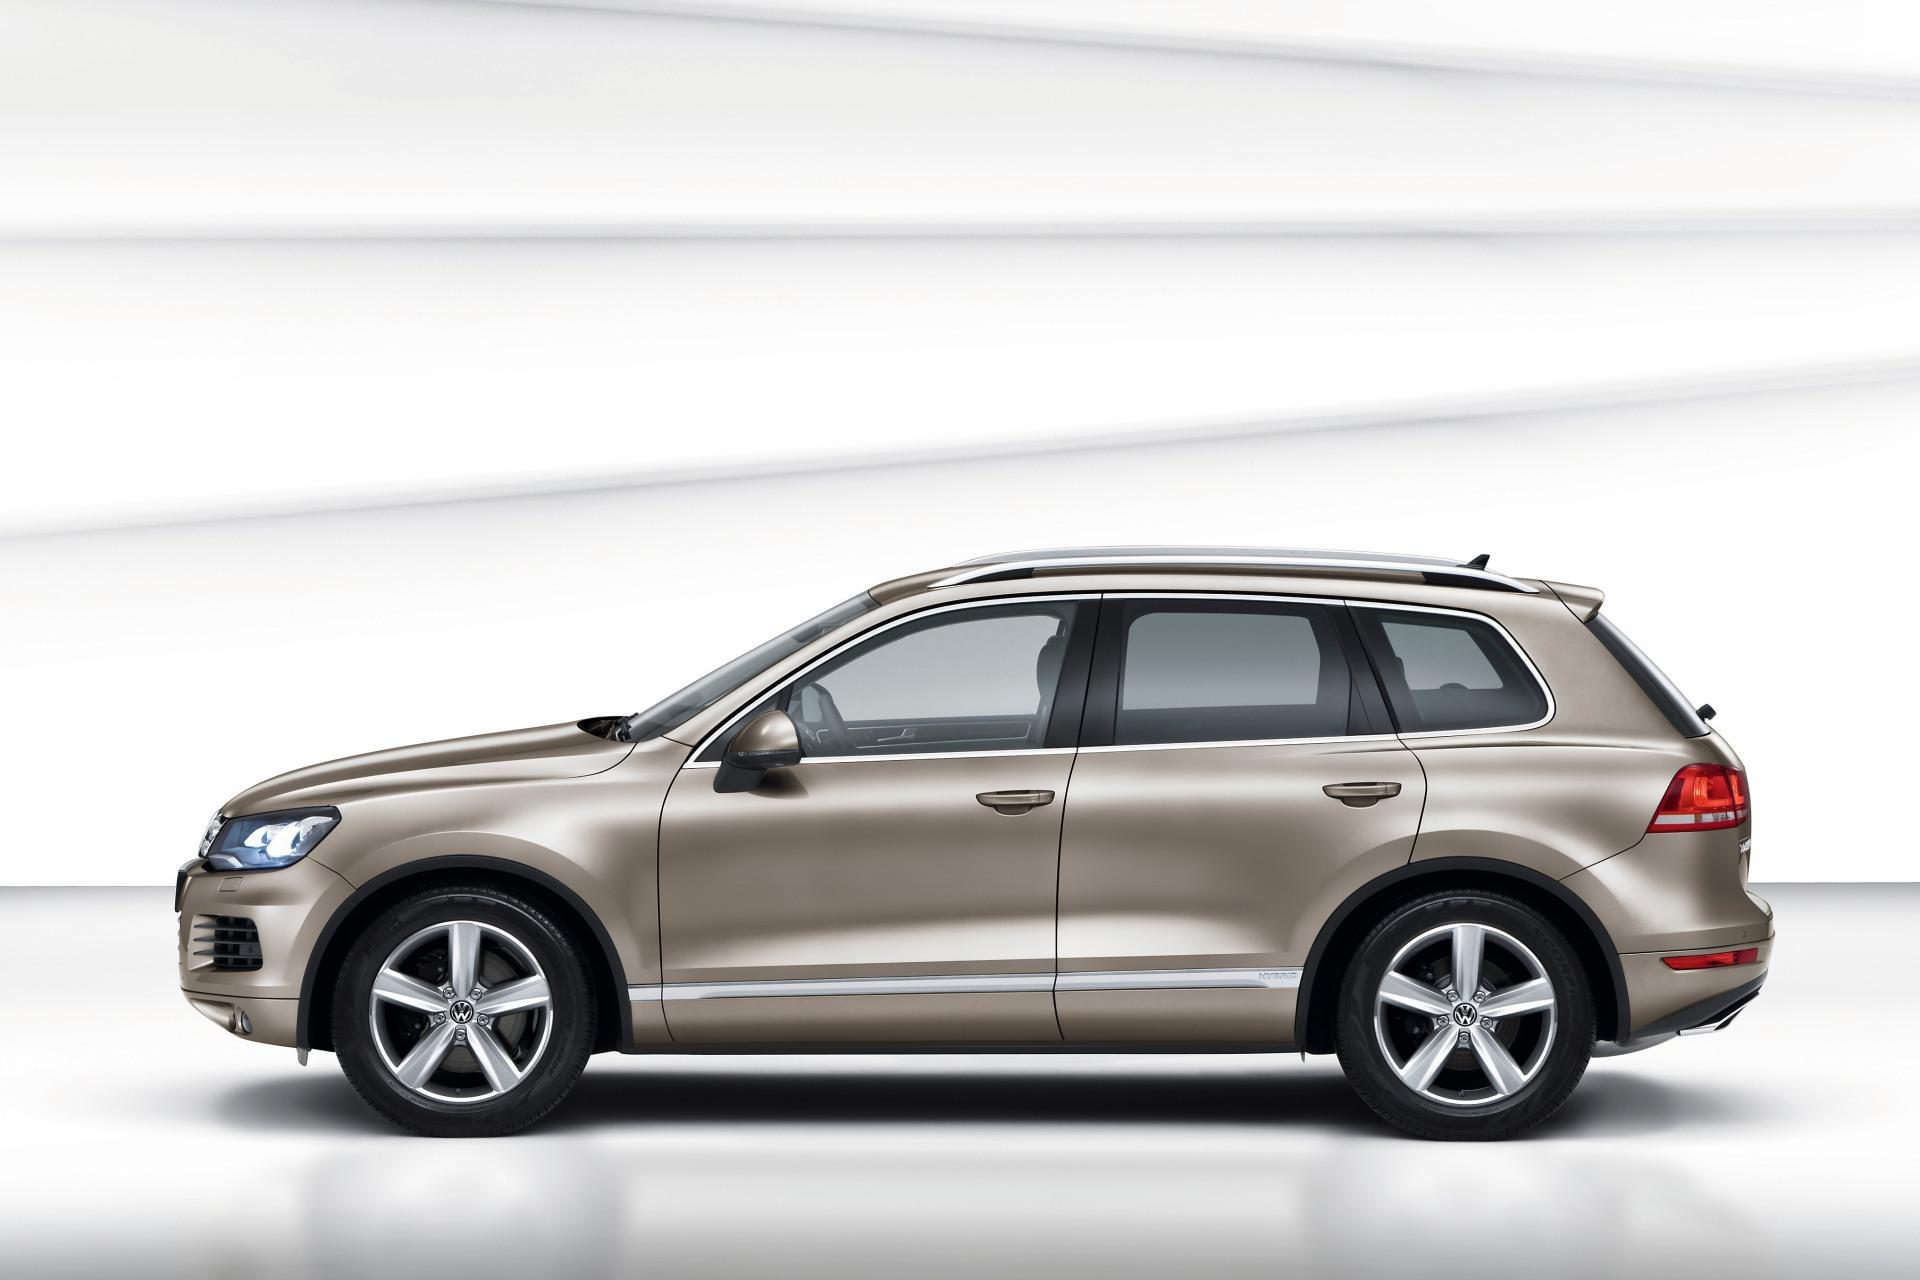 2011 volkswagen touareg technical specifications and data engine dimensions and mechanical. Black Bedroom Furniture Sets. Home Design Ideas